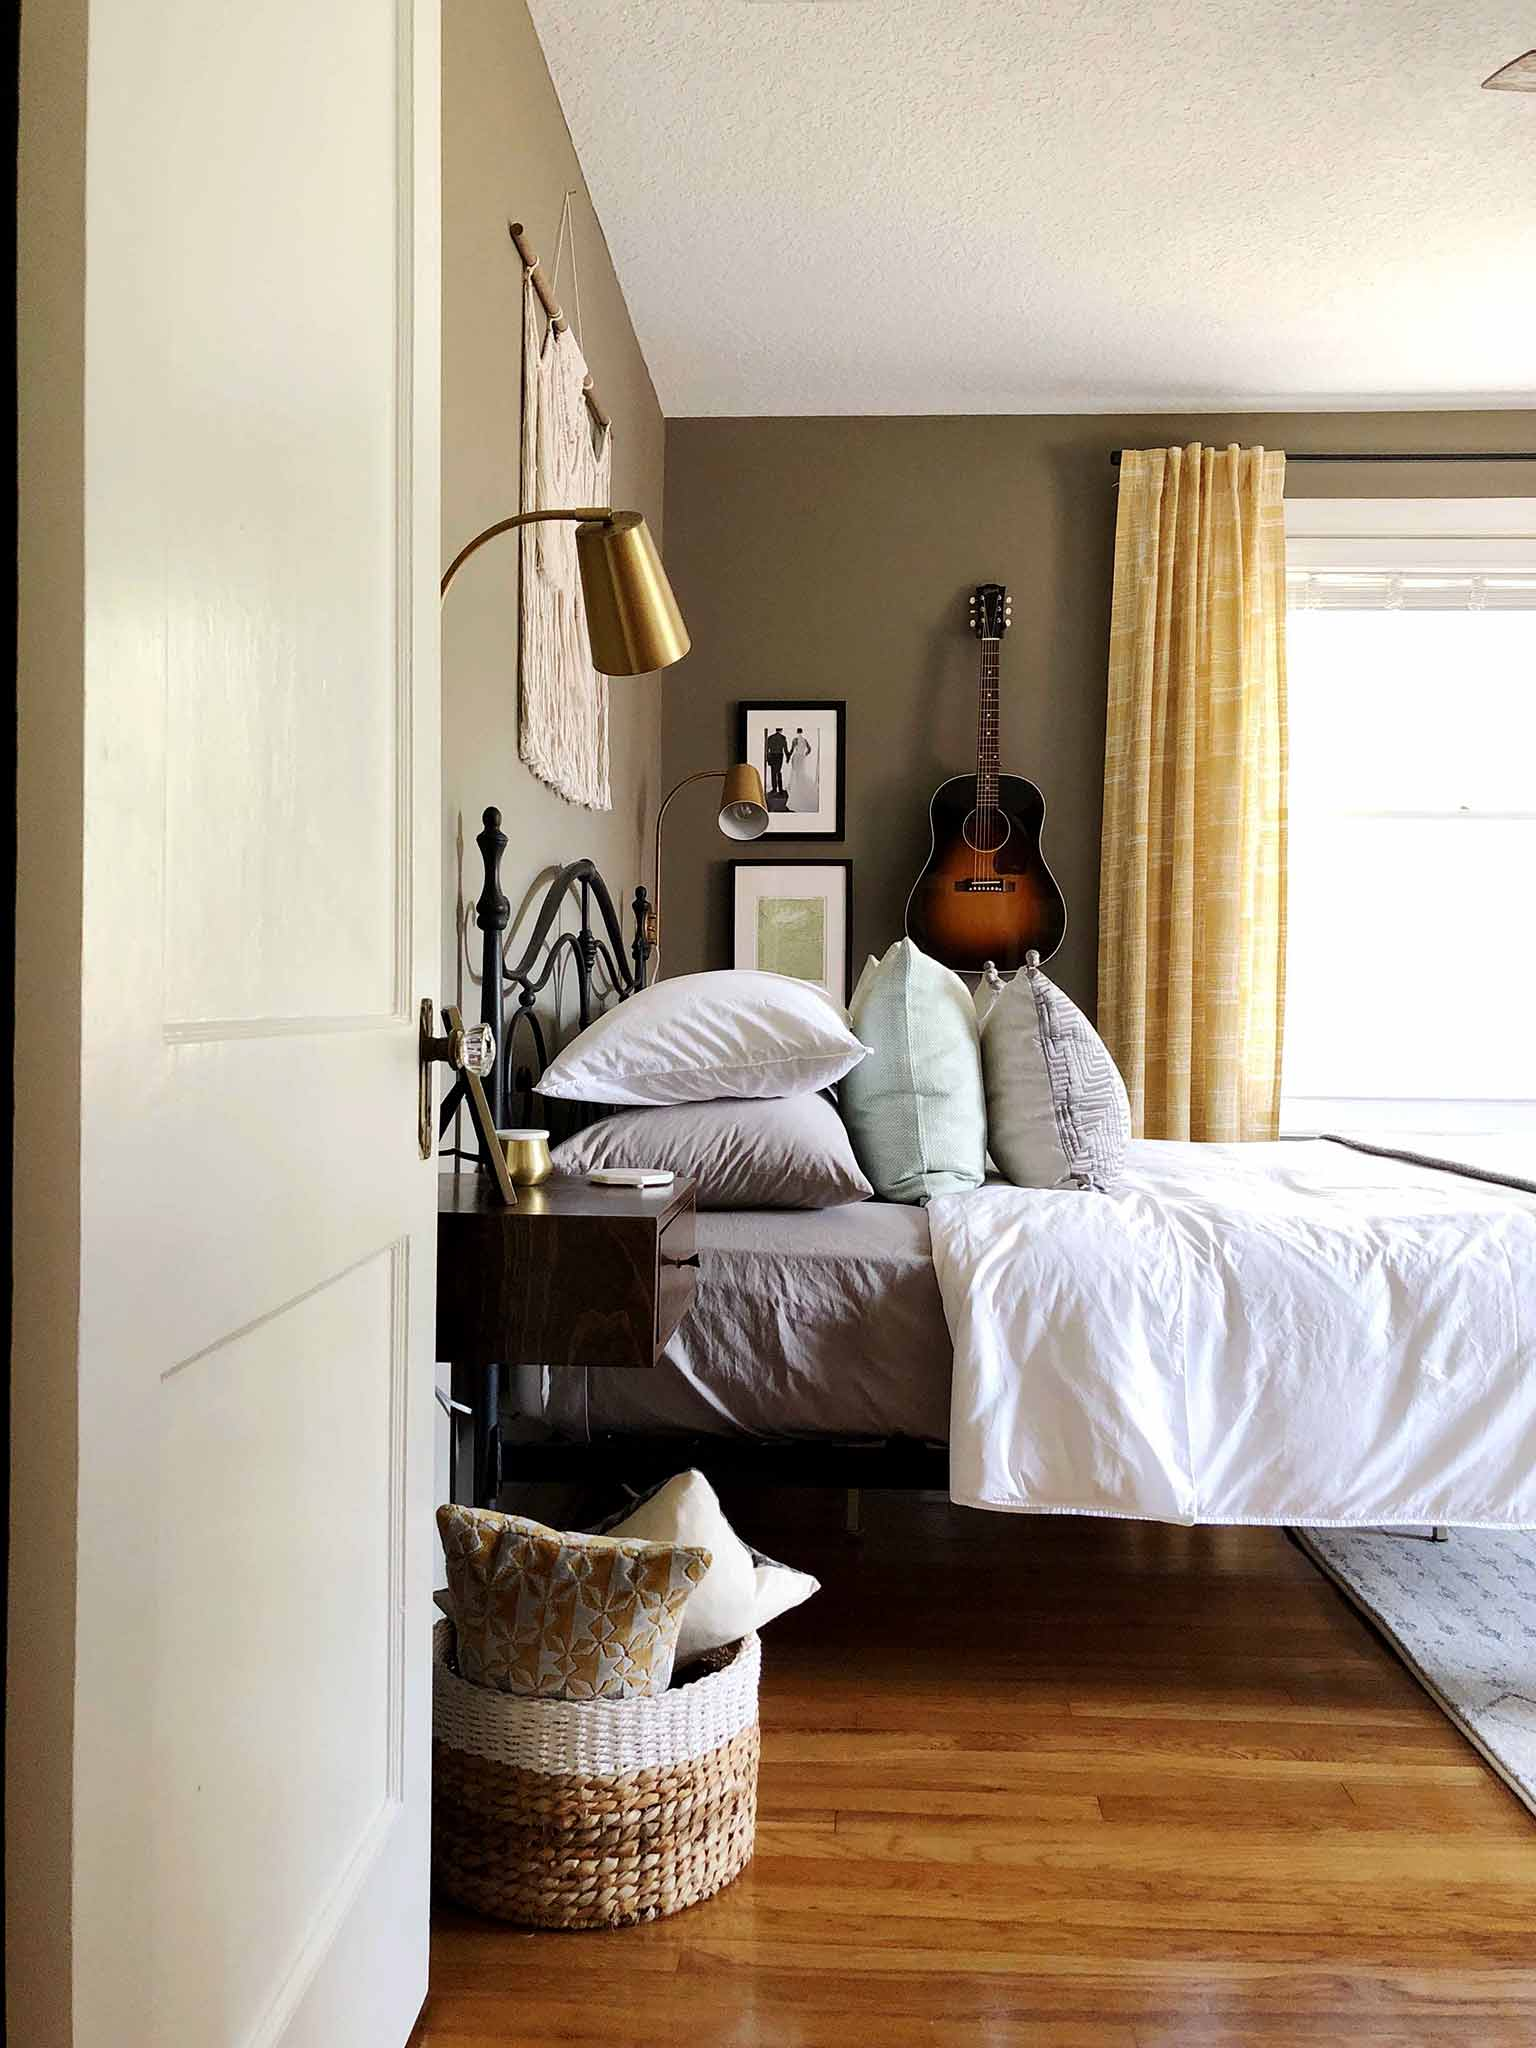 Mid Century Modern Boho Master Bedroom Reveal - The One Room Challenge - That Homebird Life Blog